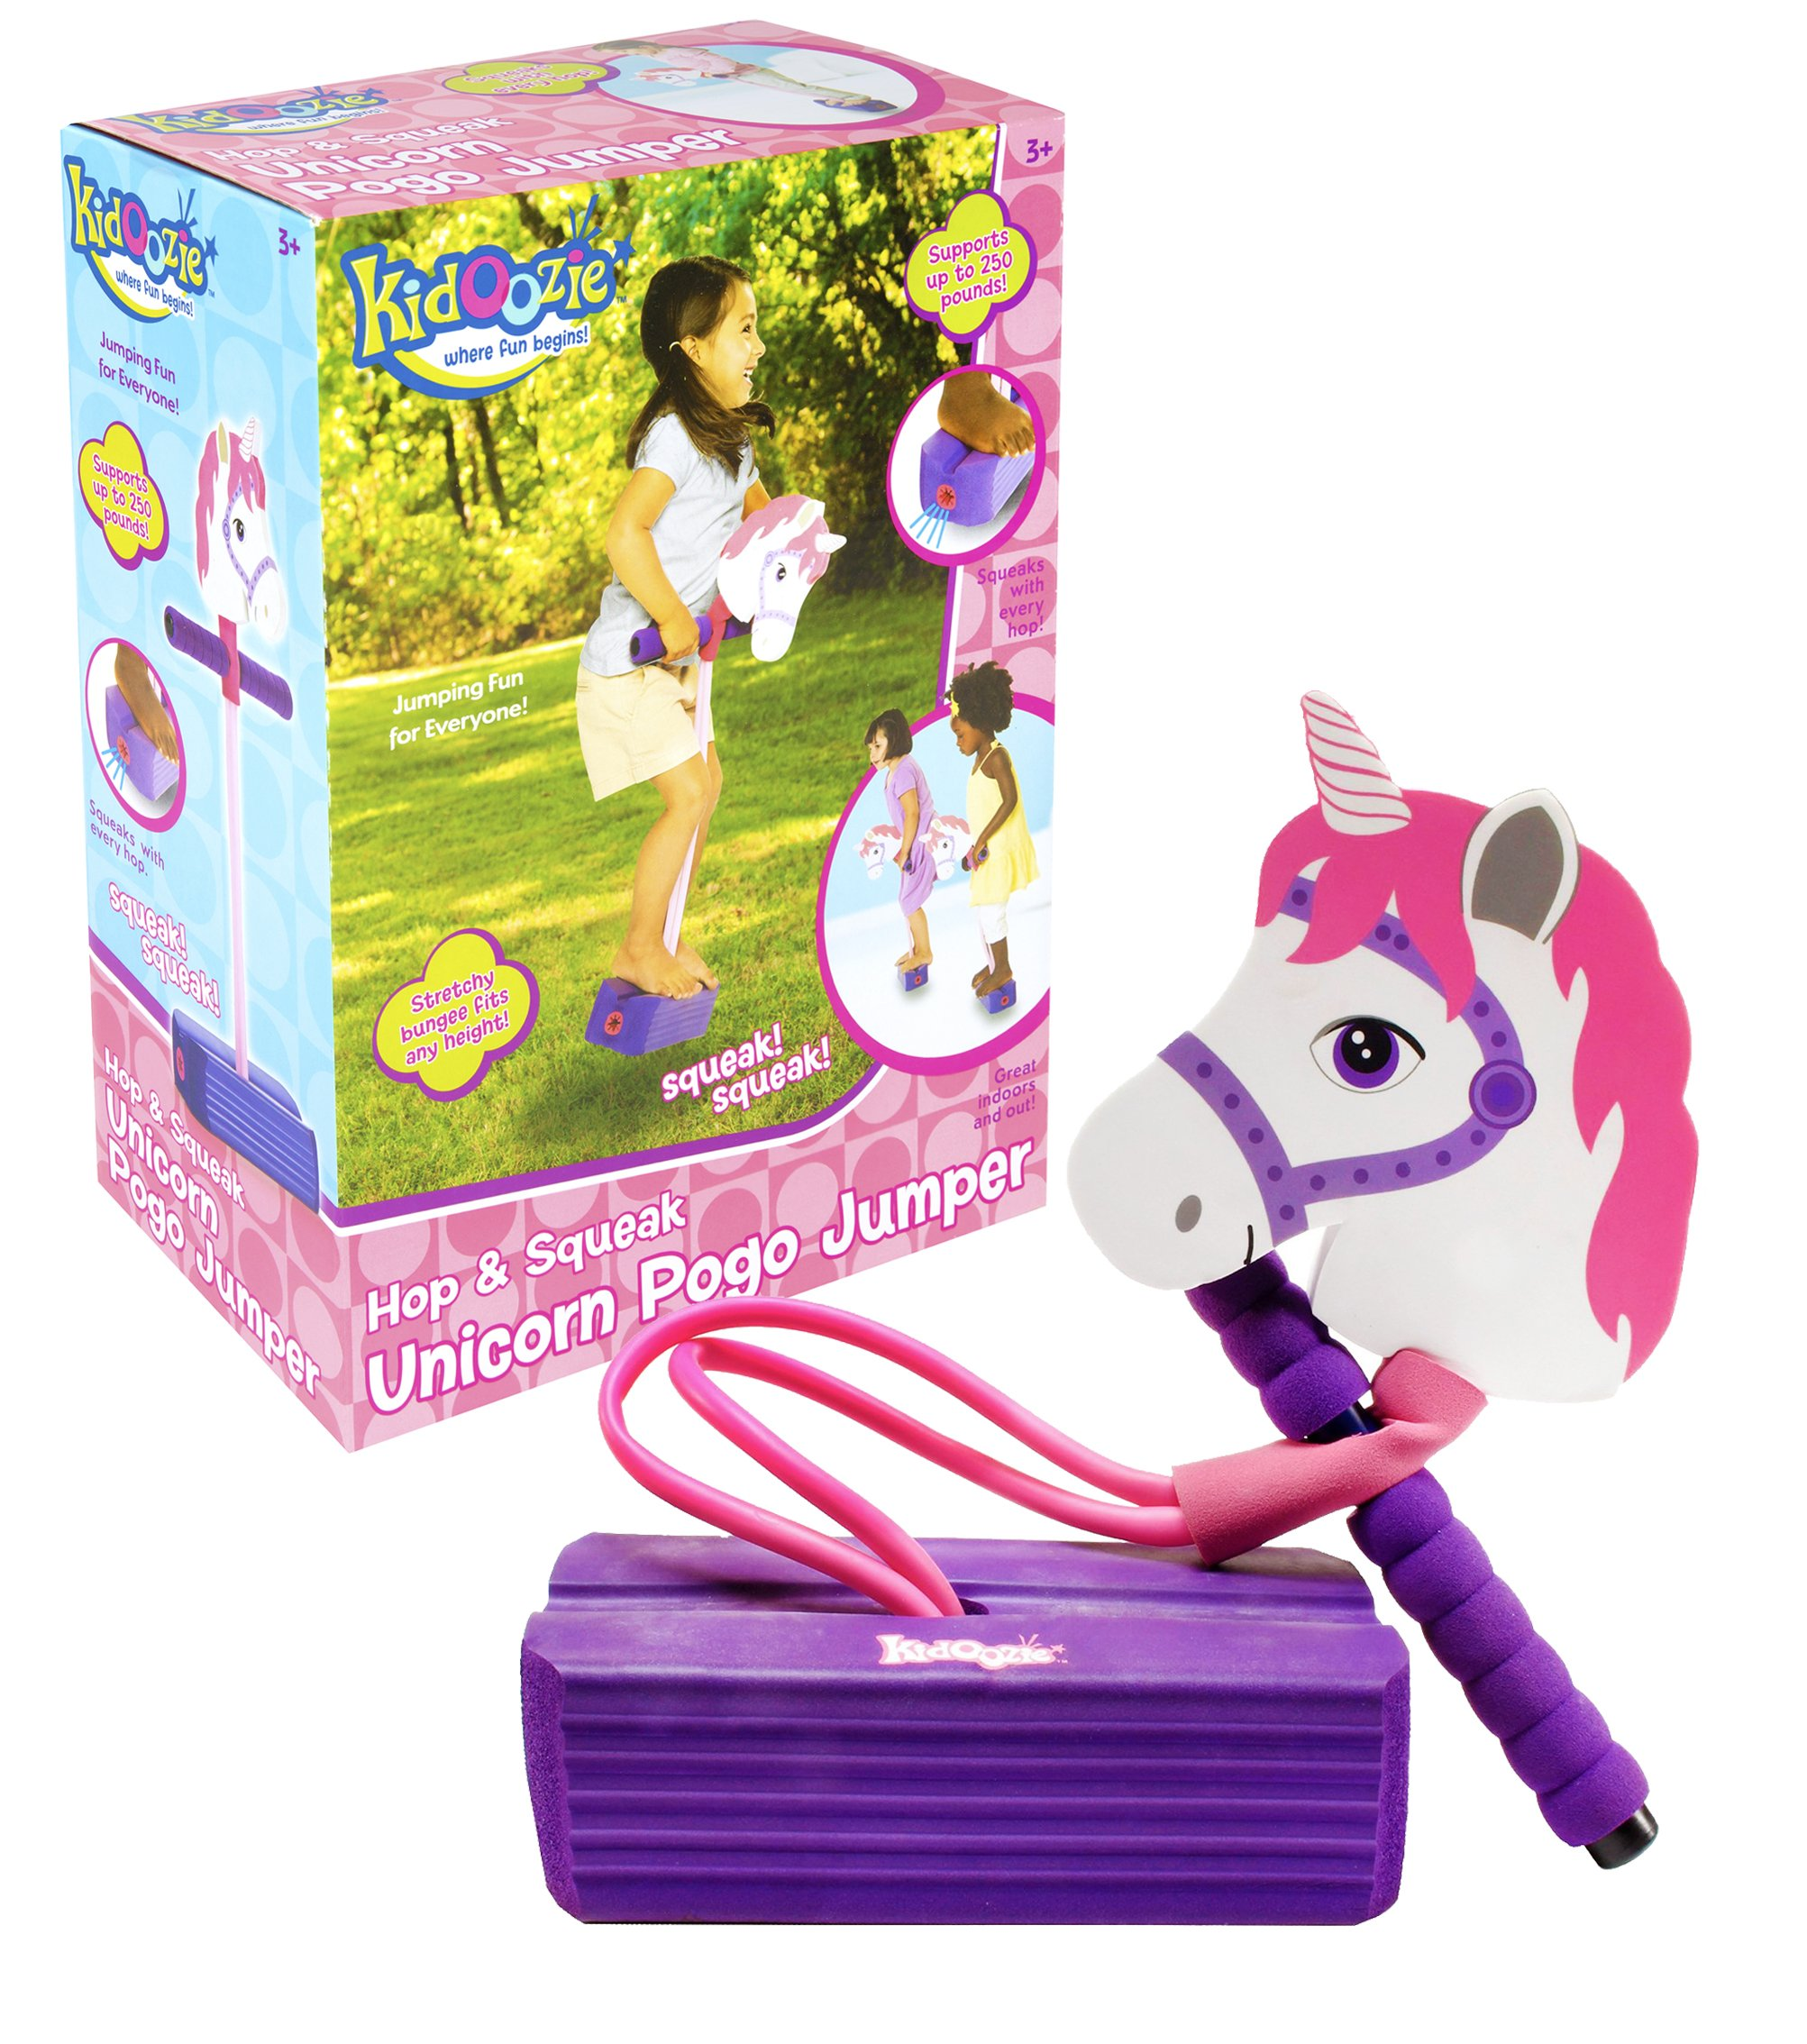 Kidoozie Foam Unicorn Pogo Jumper - Fun and Safe Play - Encourages an Active Lifestyle - Makes Squeaky Sounds - For All Sizes, 250 Pound Capacity by Kidoozie